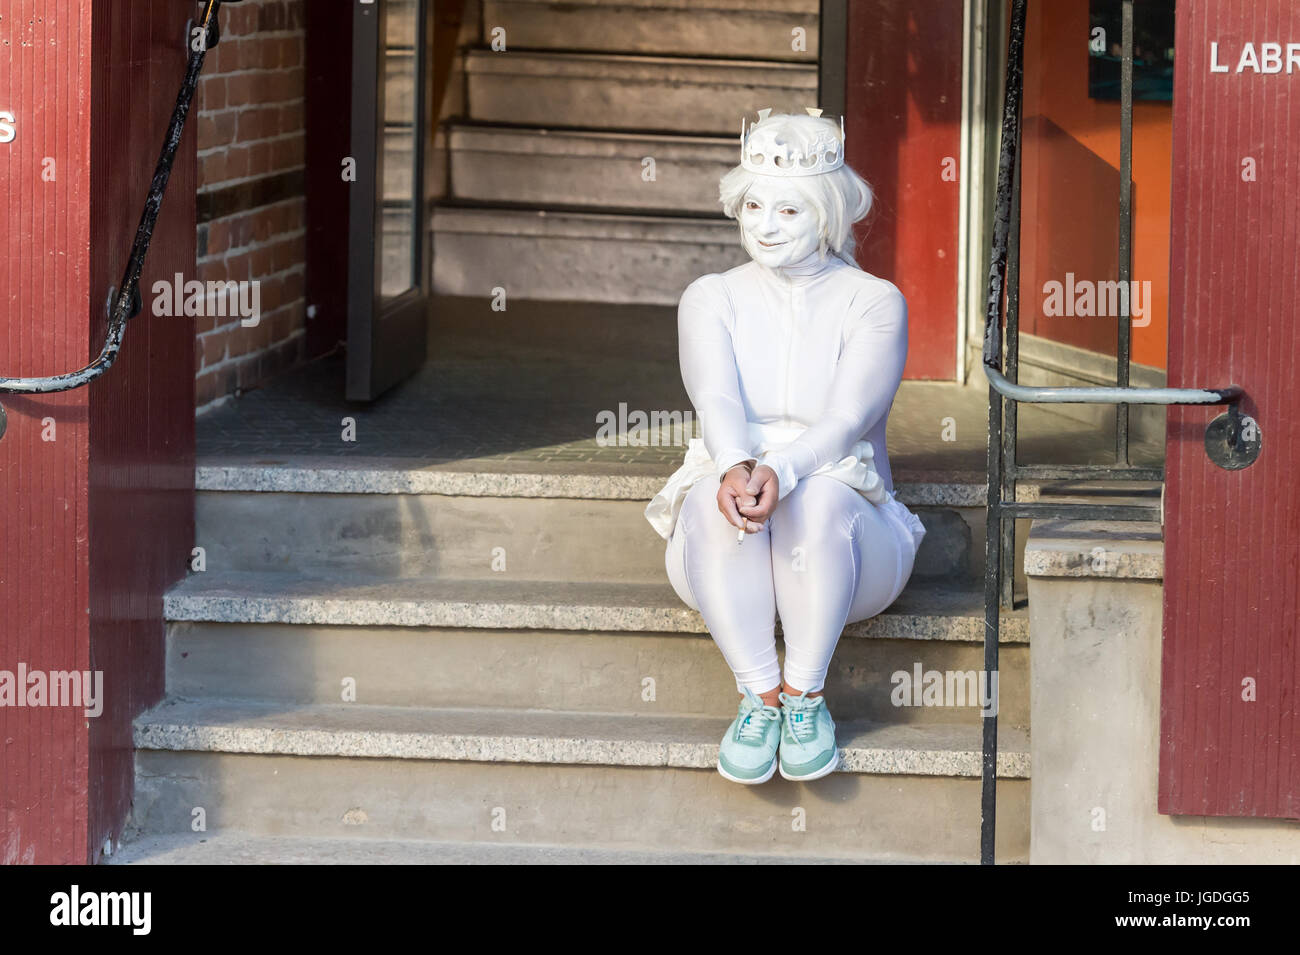 Montreal, 3 July 2017: Mime artist with white make-up and white costume taking a break at Montreal Jazz Festival Stock Photo